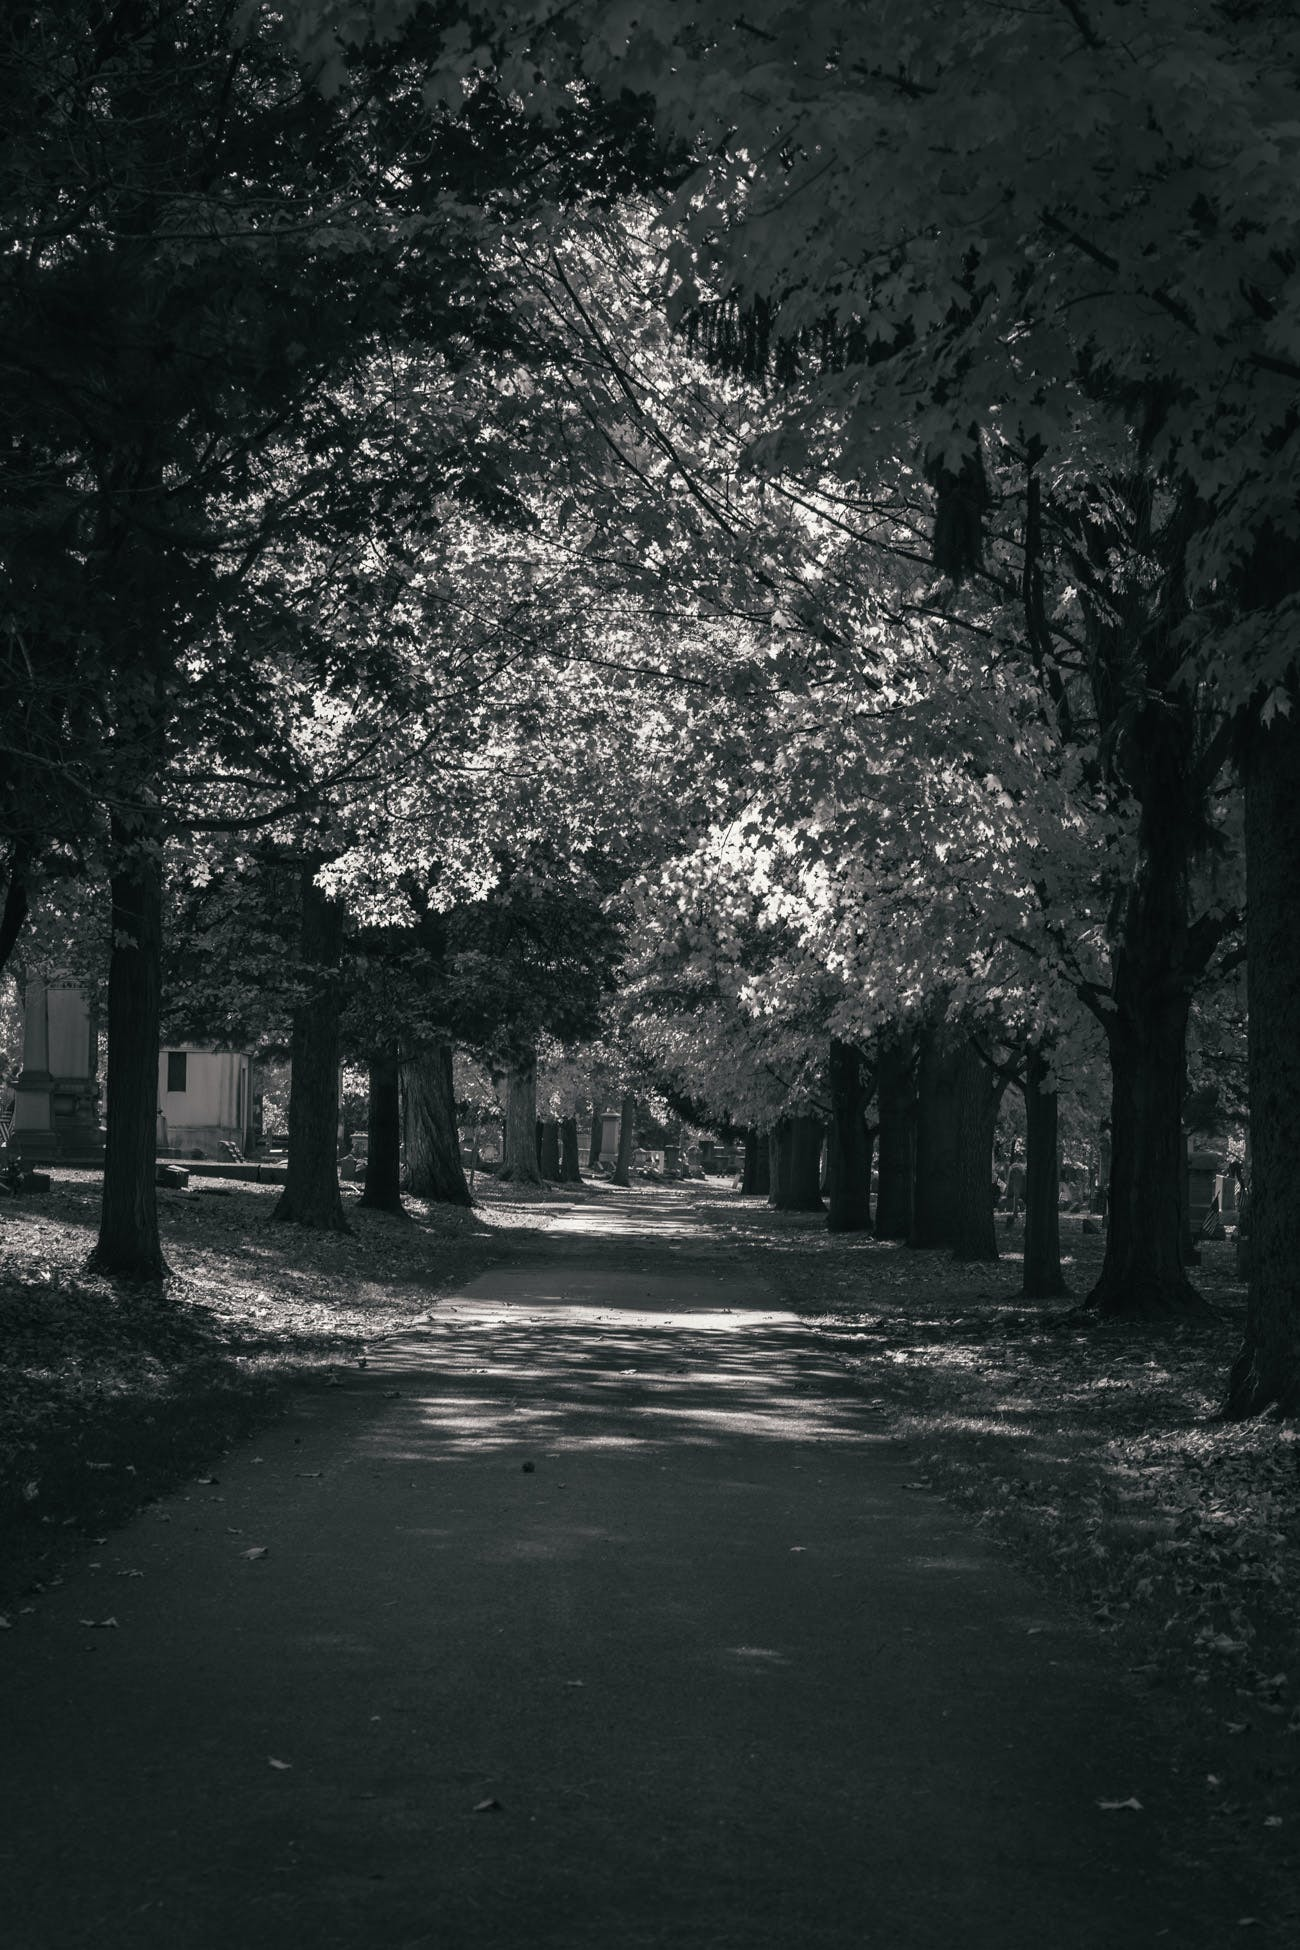 Free stock photo of road, trees, leaves, cemetery